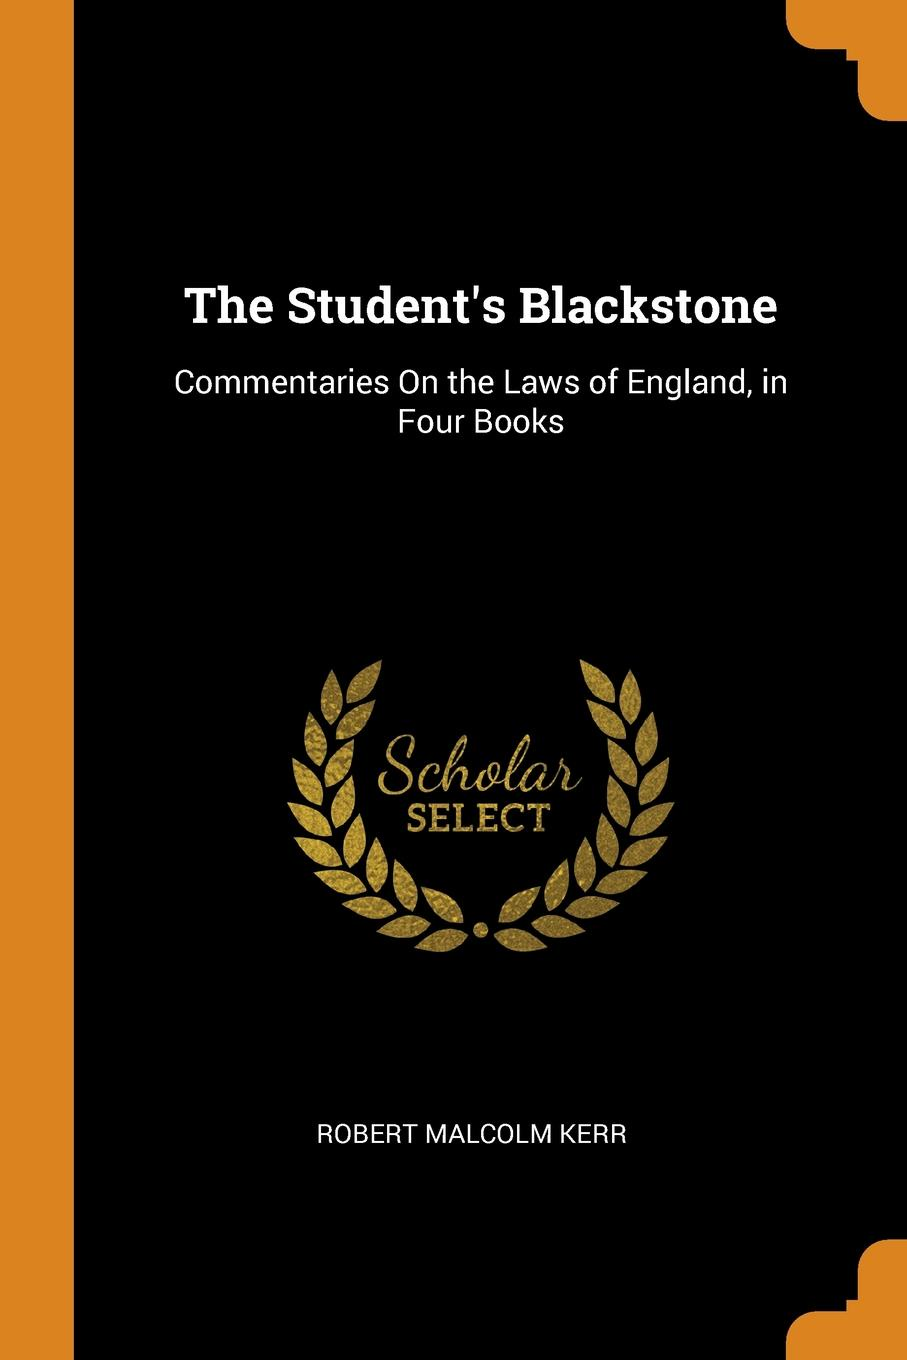 The Student.s Blackstone. Commentaries On the Laws of England, in Four Books. Robert Malcolm Kerr